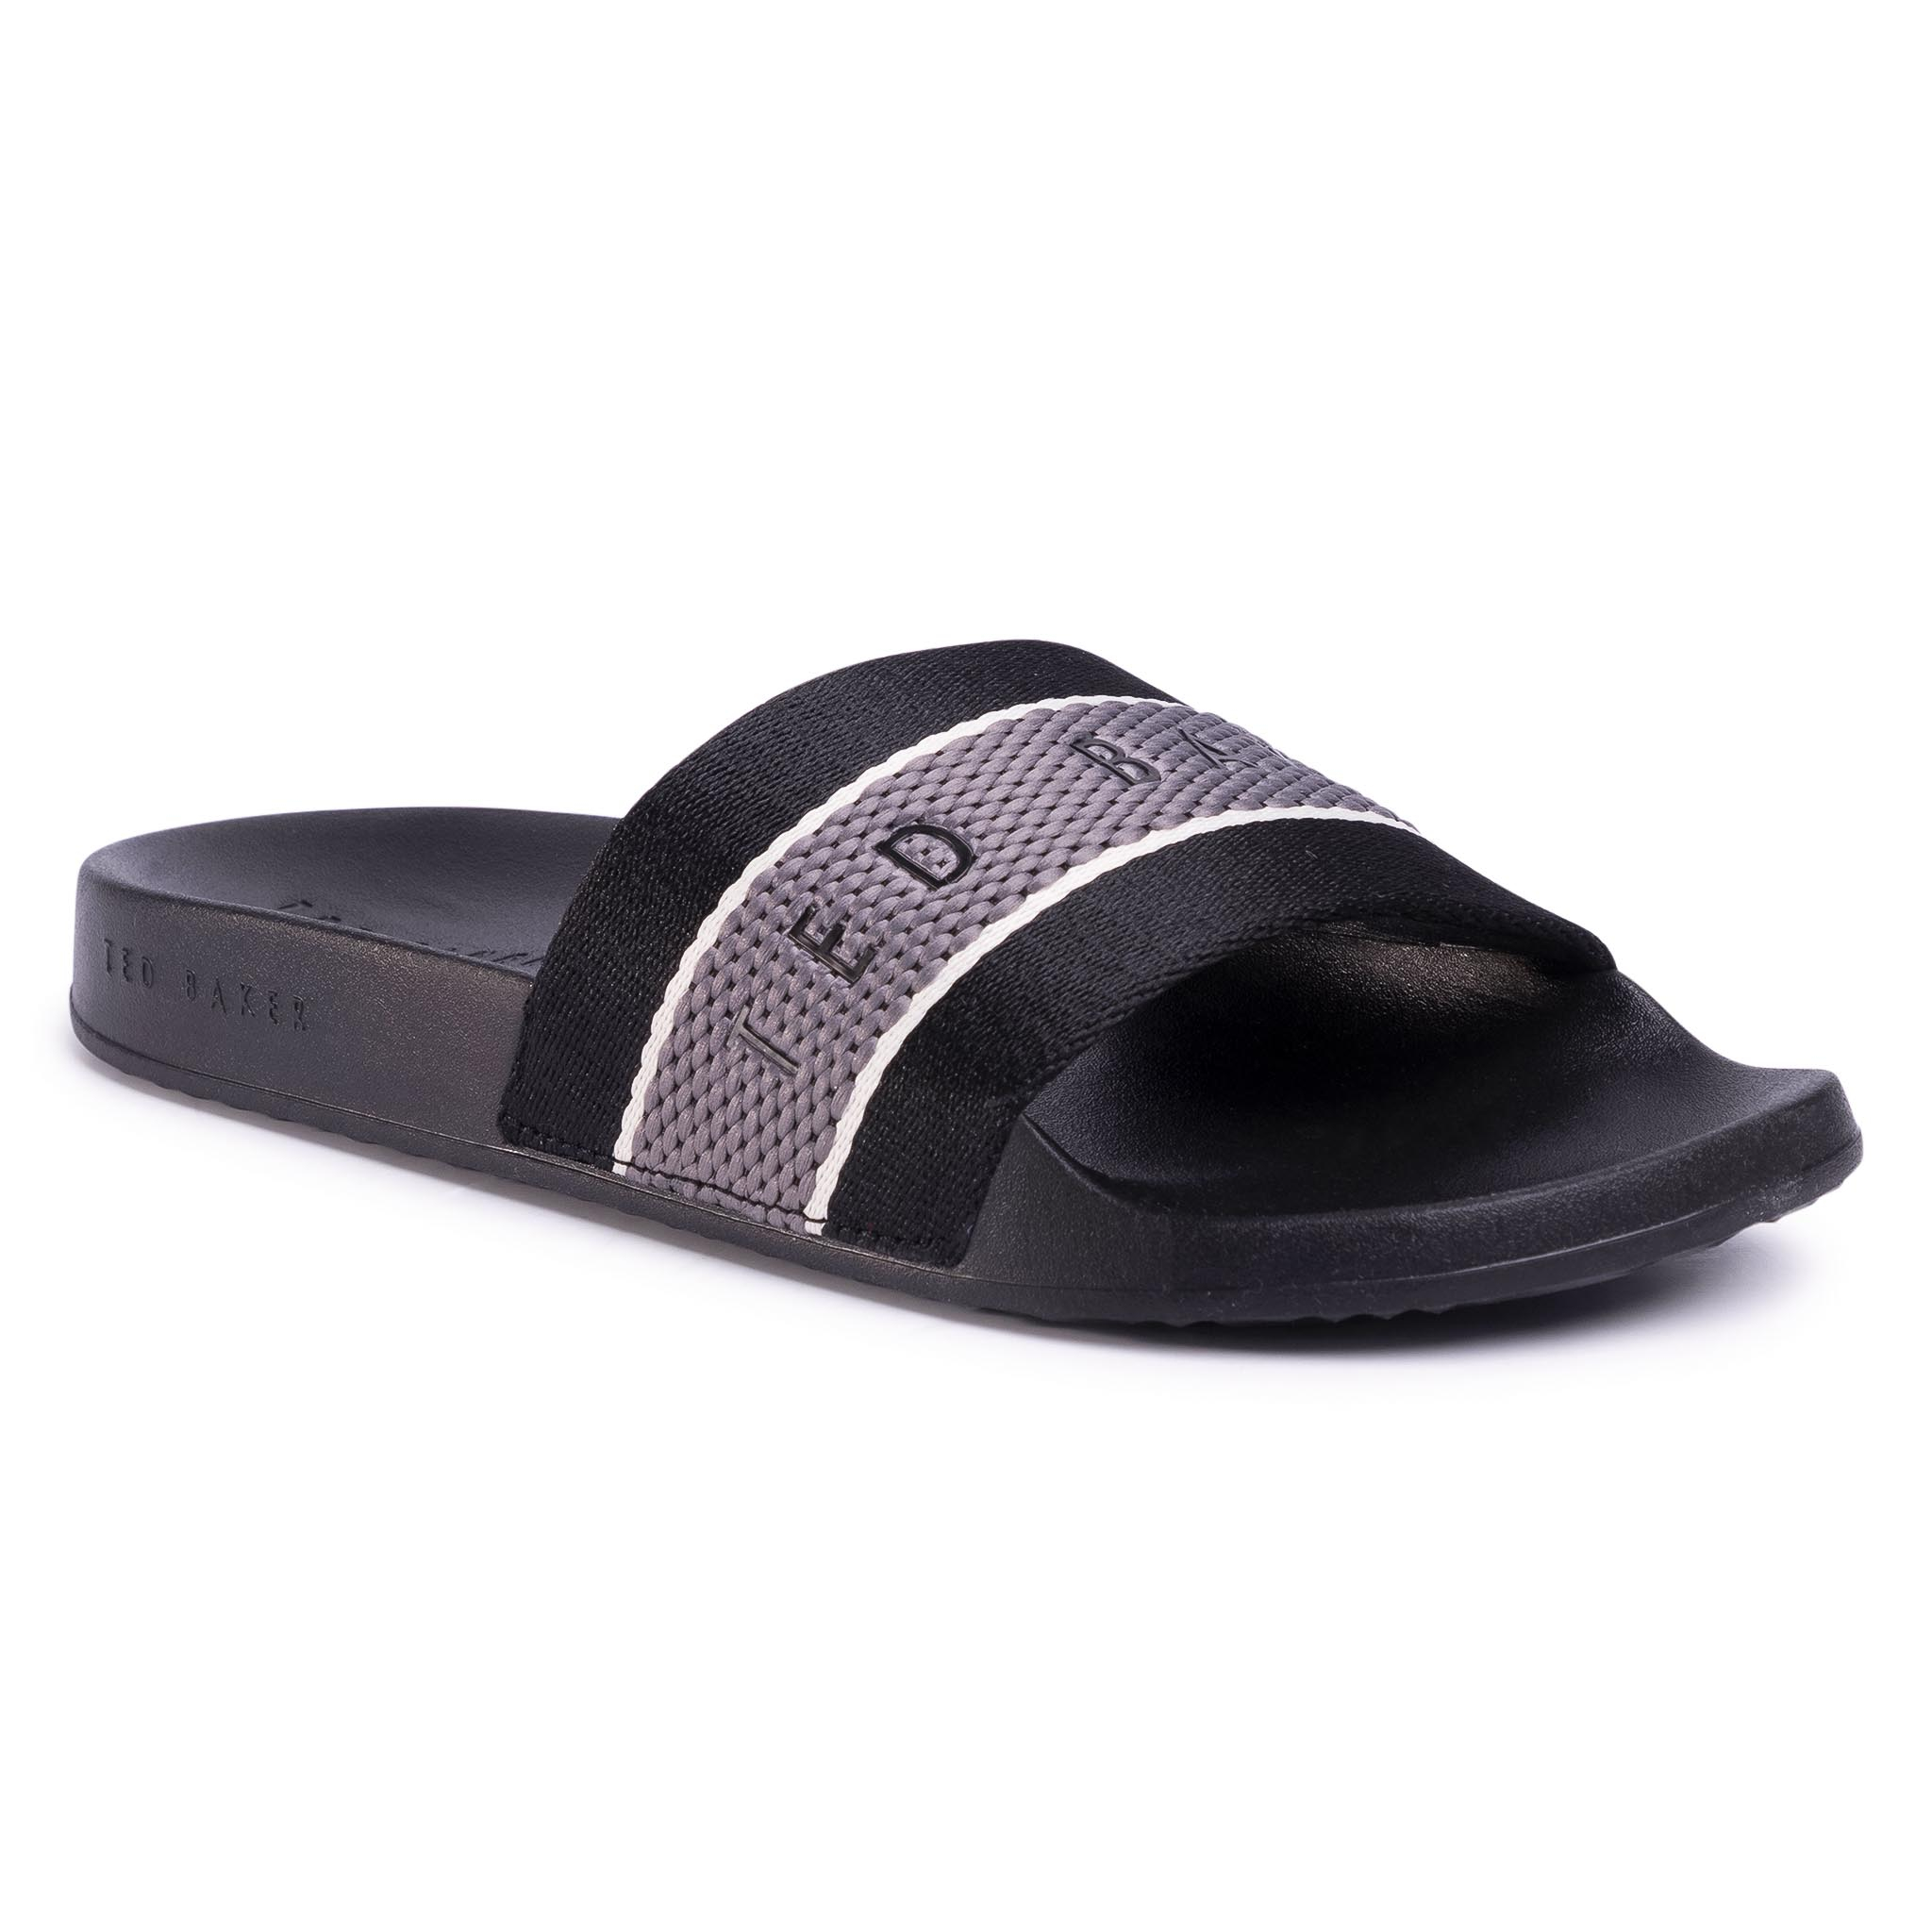 Șlapi Ted Baker - Rastar 230634 Black imagine epantofi.ro 2021